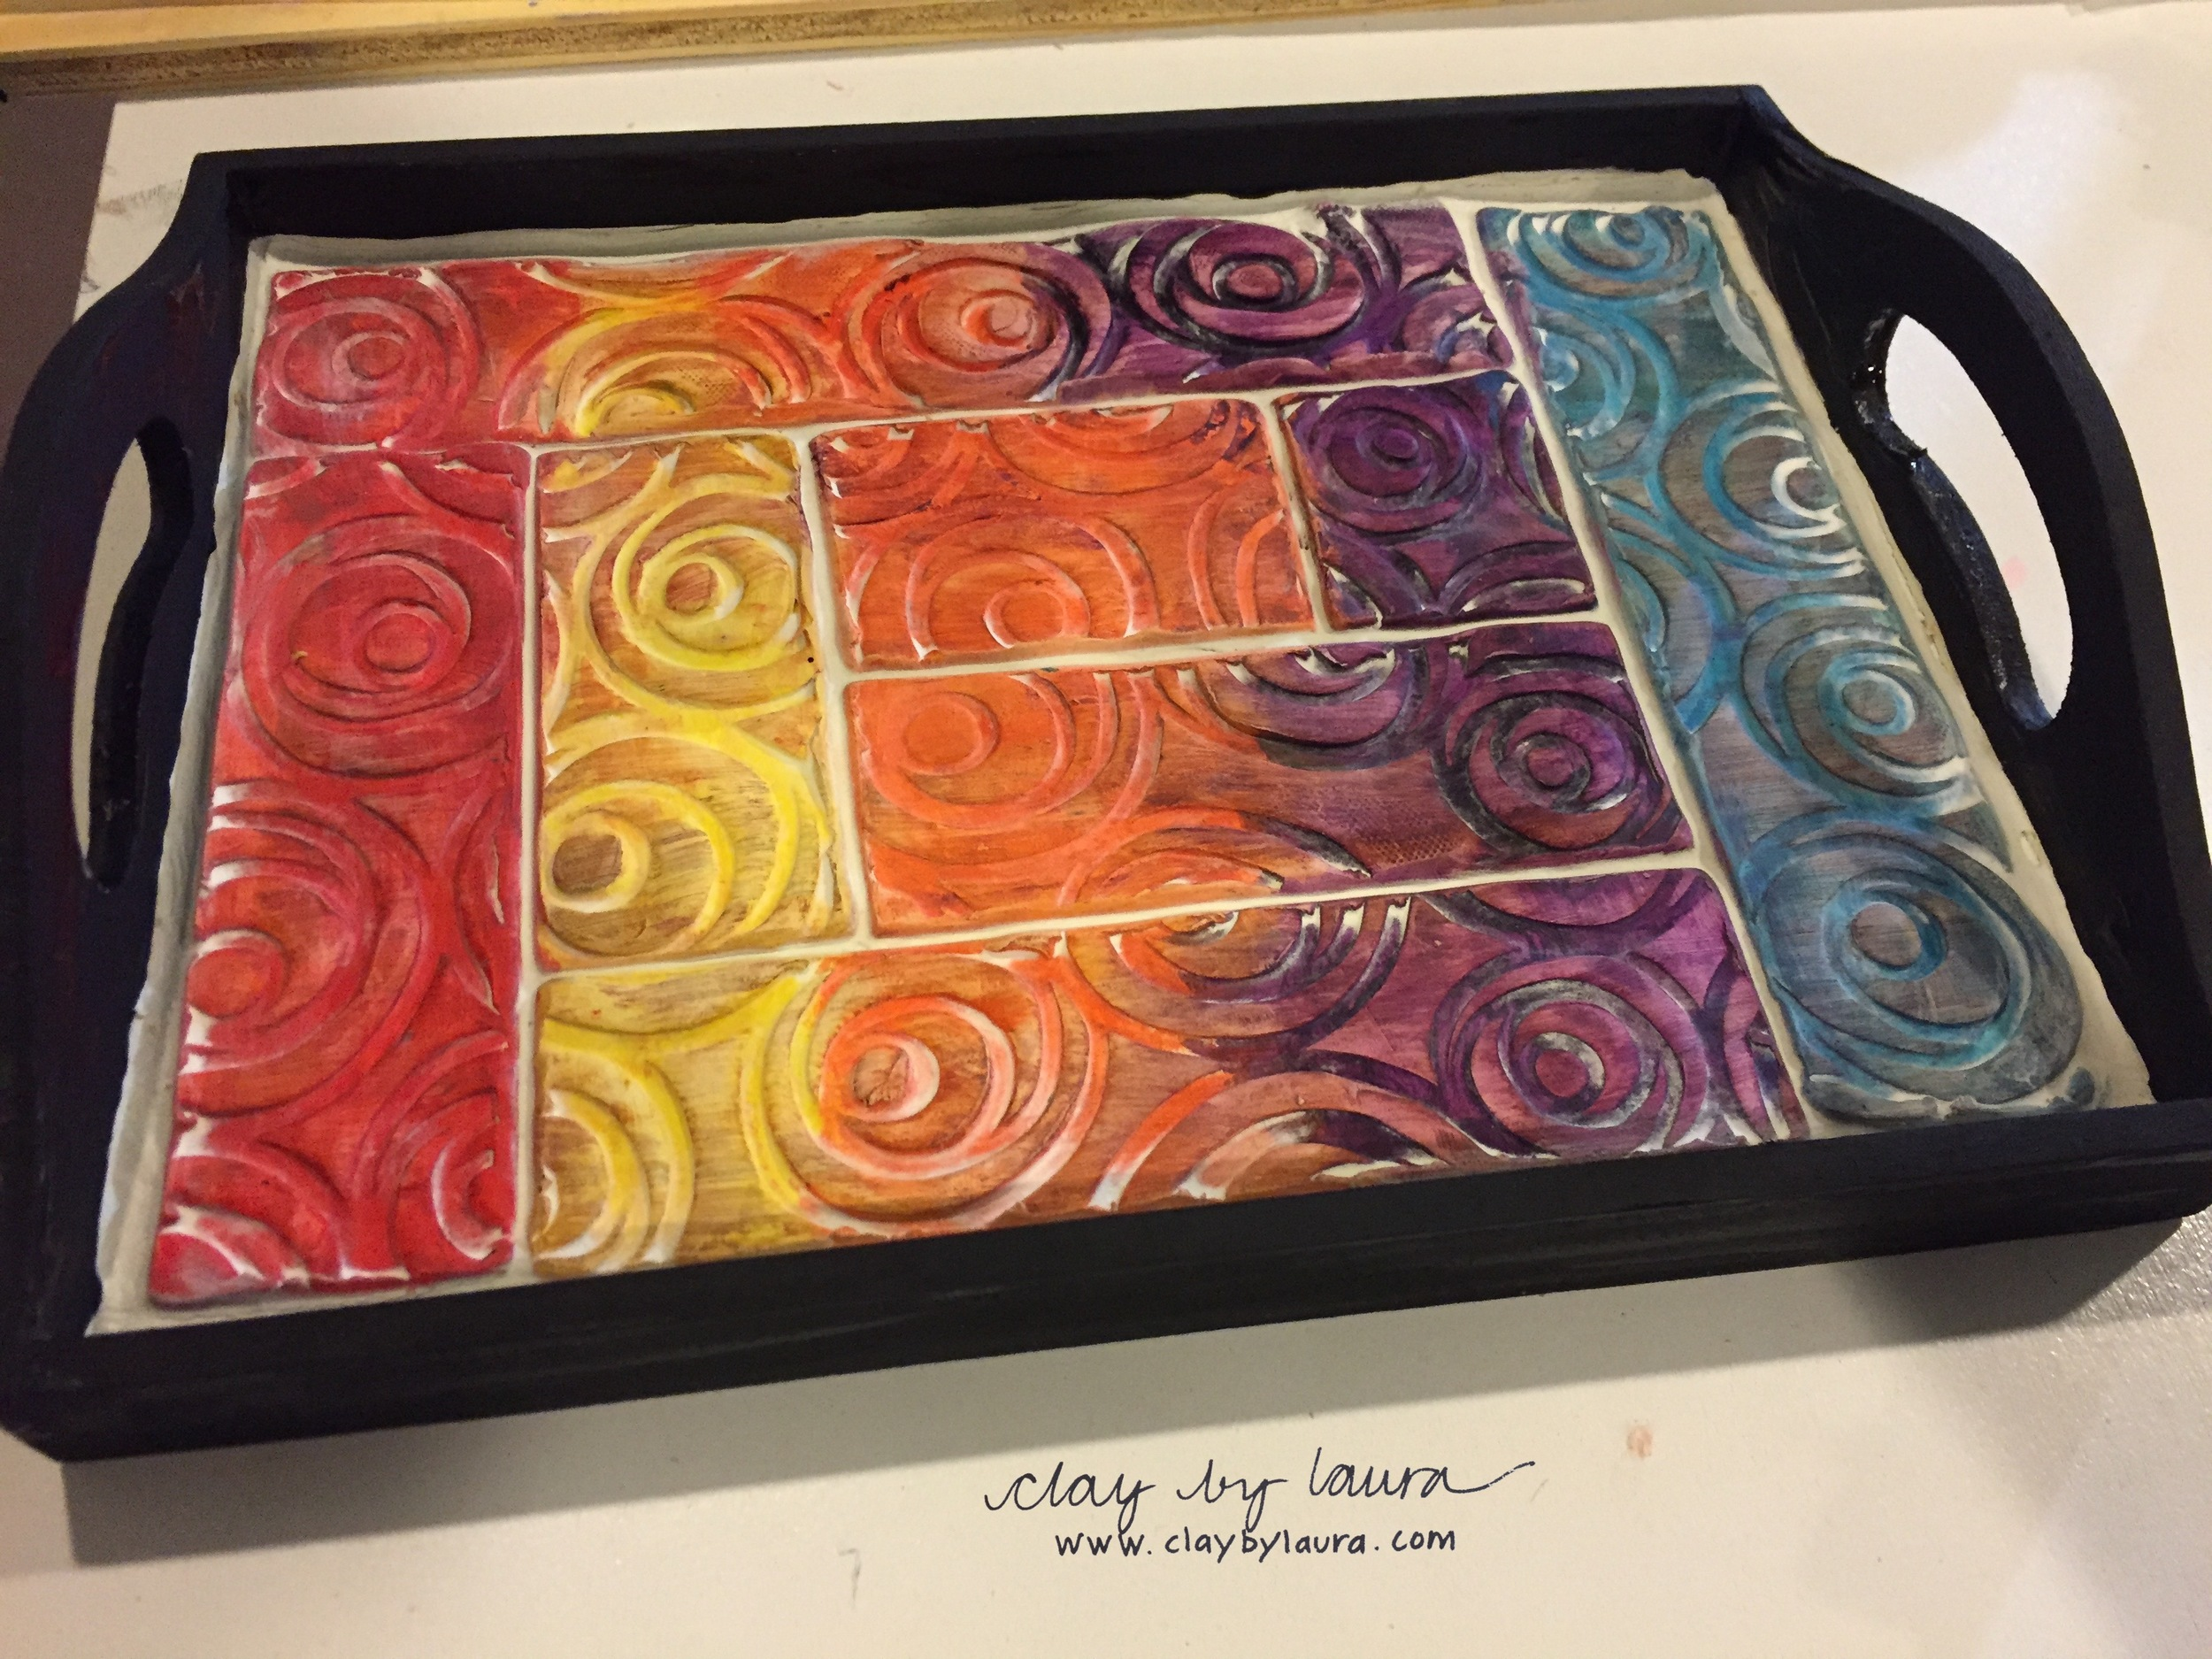 Want to make a tray like this? You can! I've made and assembled all the necessary materials -- so join me November 8 at my studio for an afternoon of fun and creativity. Contact  The Muse  to register. Space is limited, so make your plans soon!